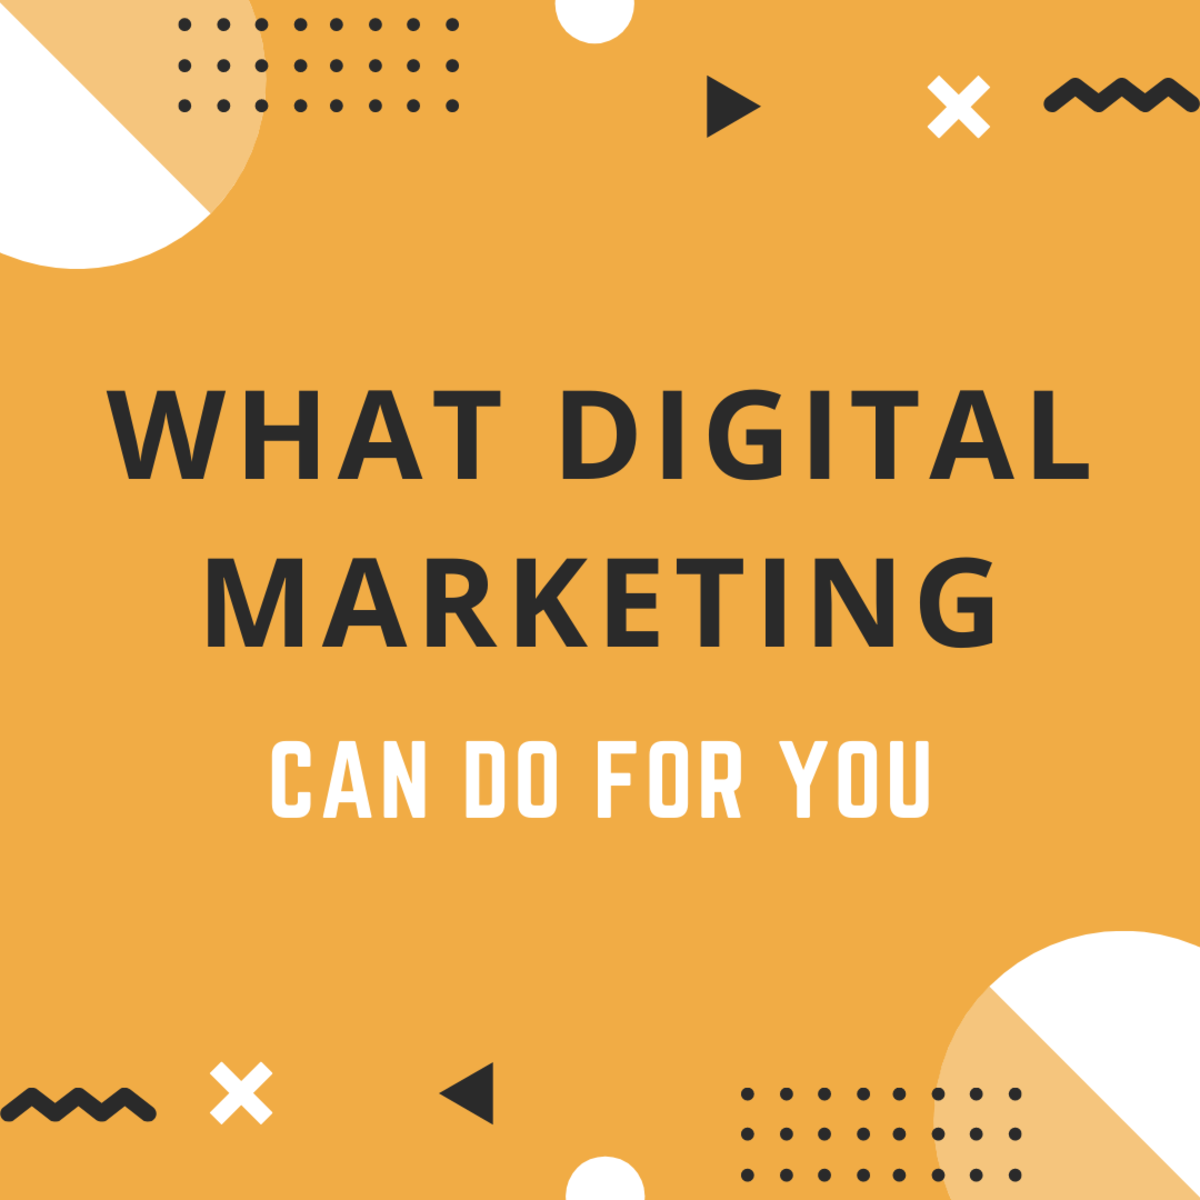 Find out what digital marketing can do for your small business!